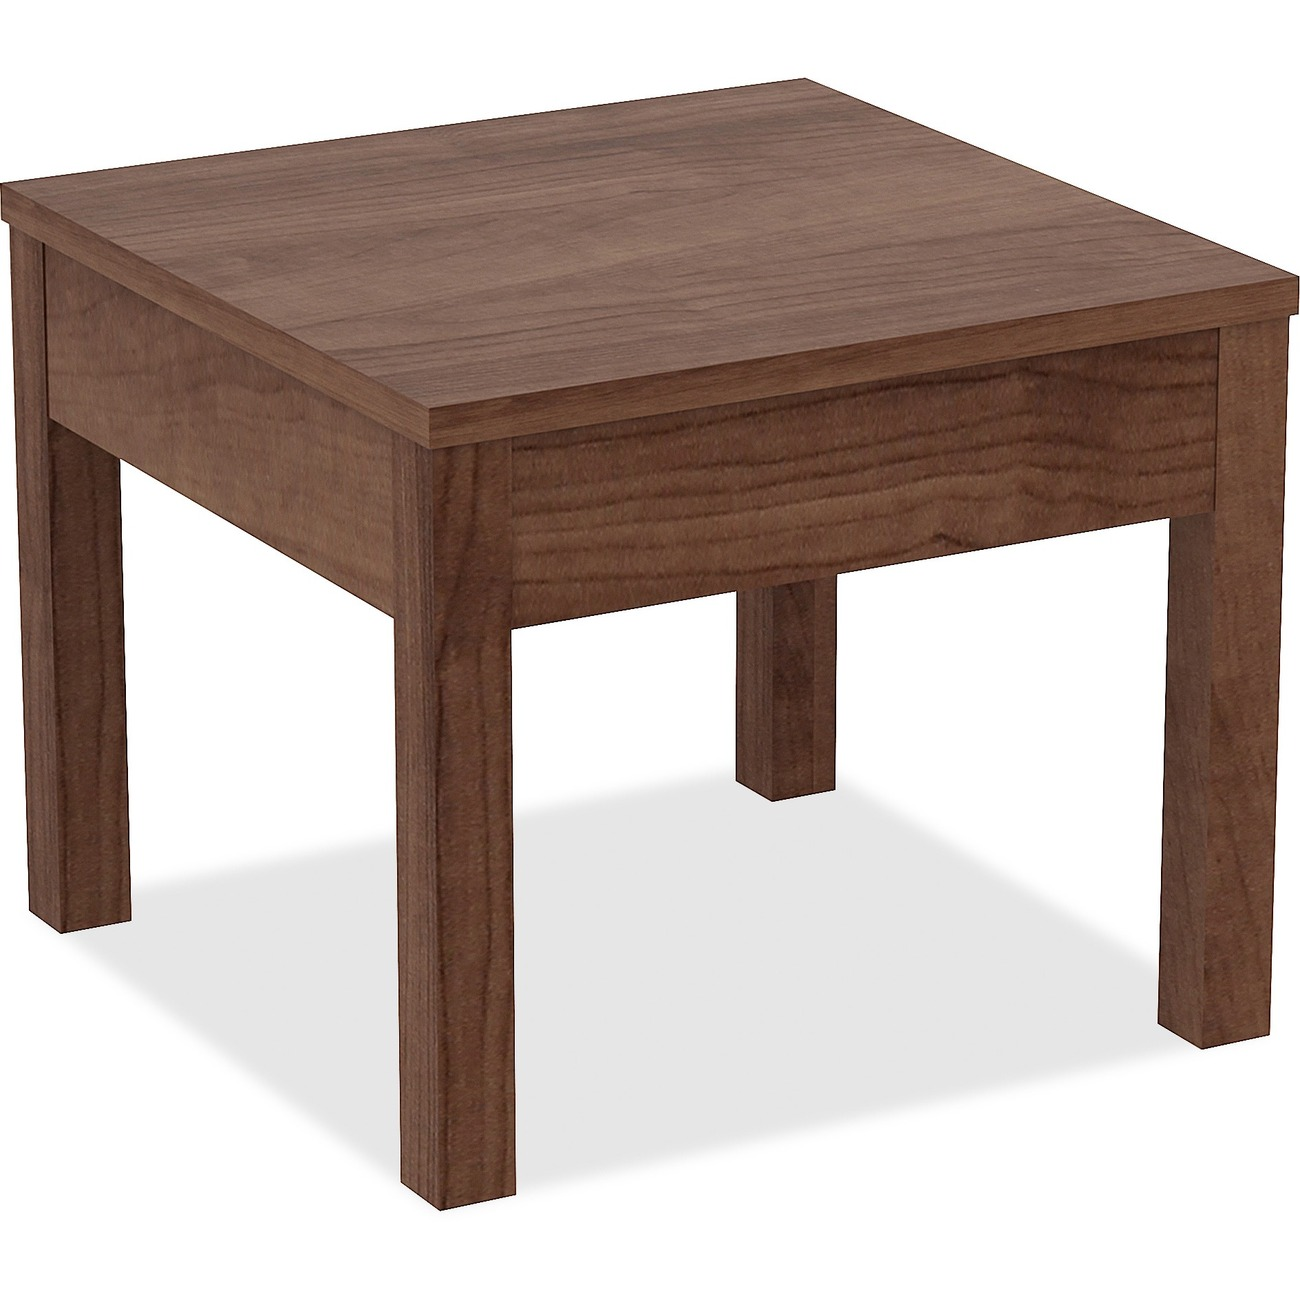 Parson Style Corner Table Is Perfect For Your Lobby Or Office Suite The 1 Thick Particleboard Top With Melamine Surface Supported By A Frame Support